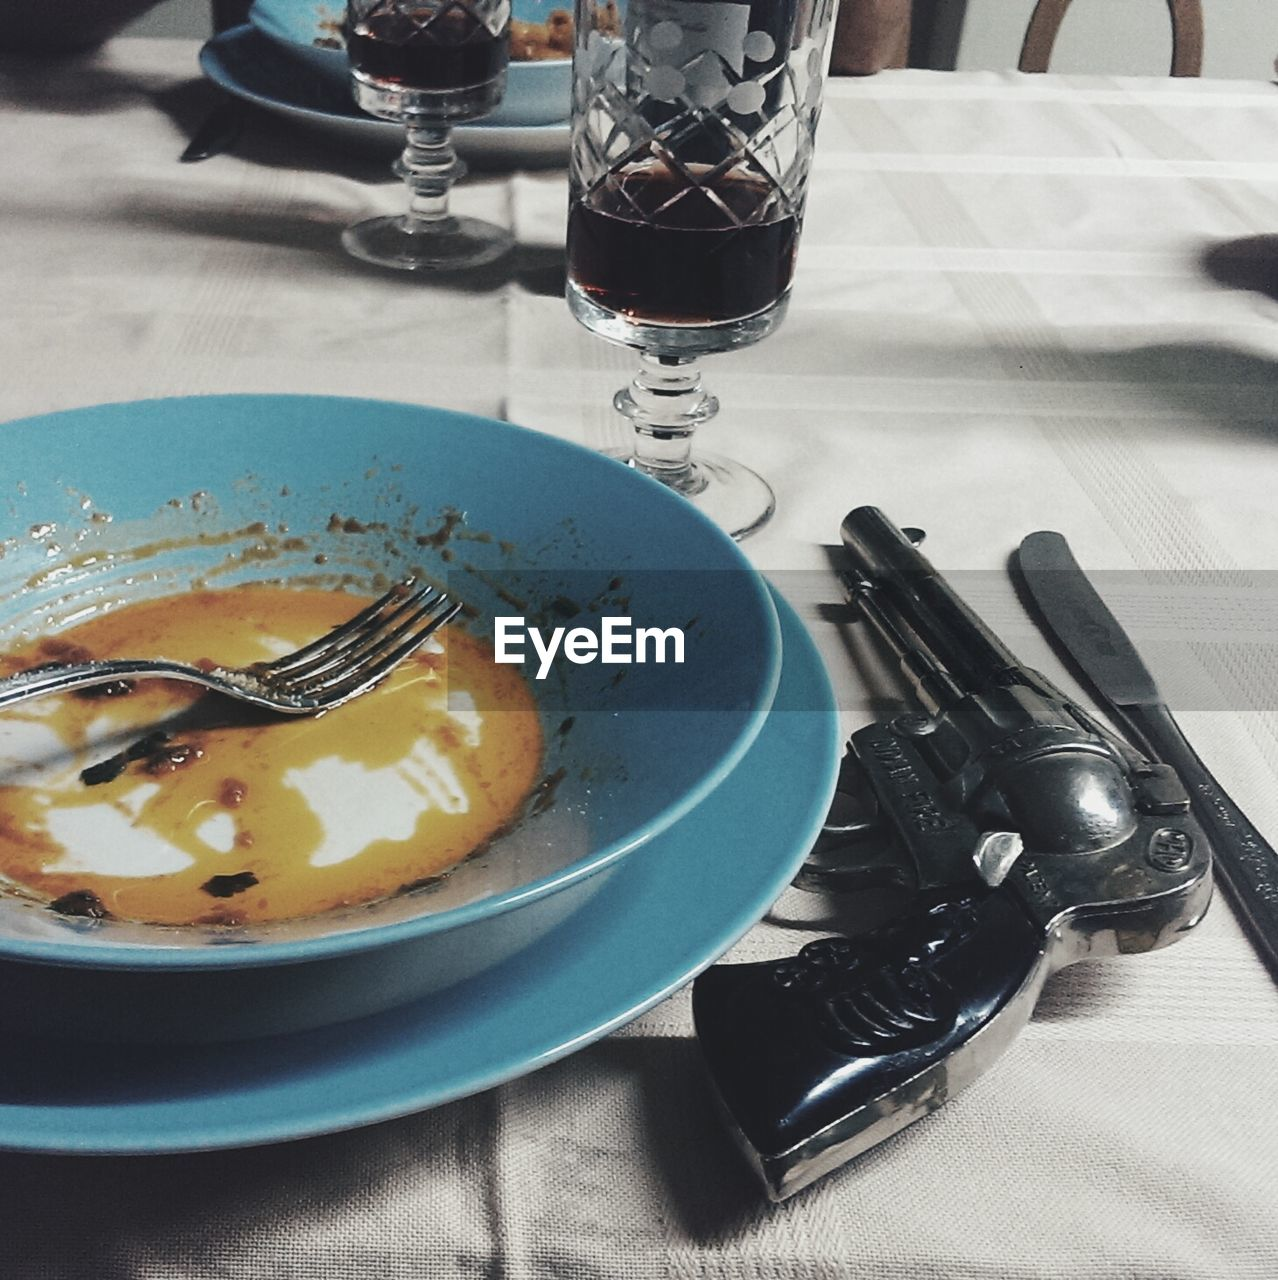 Gun By Leftovers In Bowl On Table